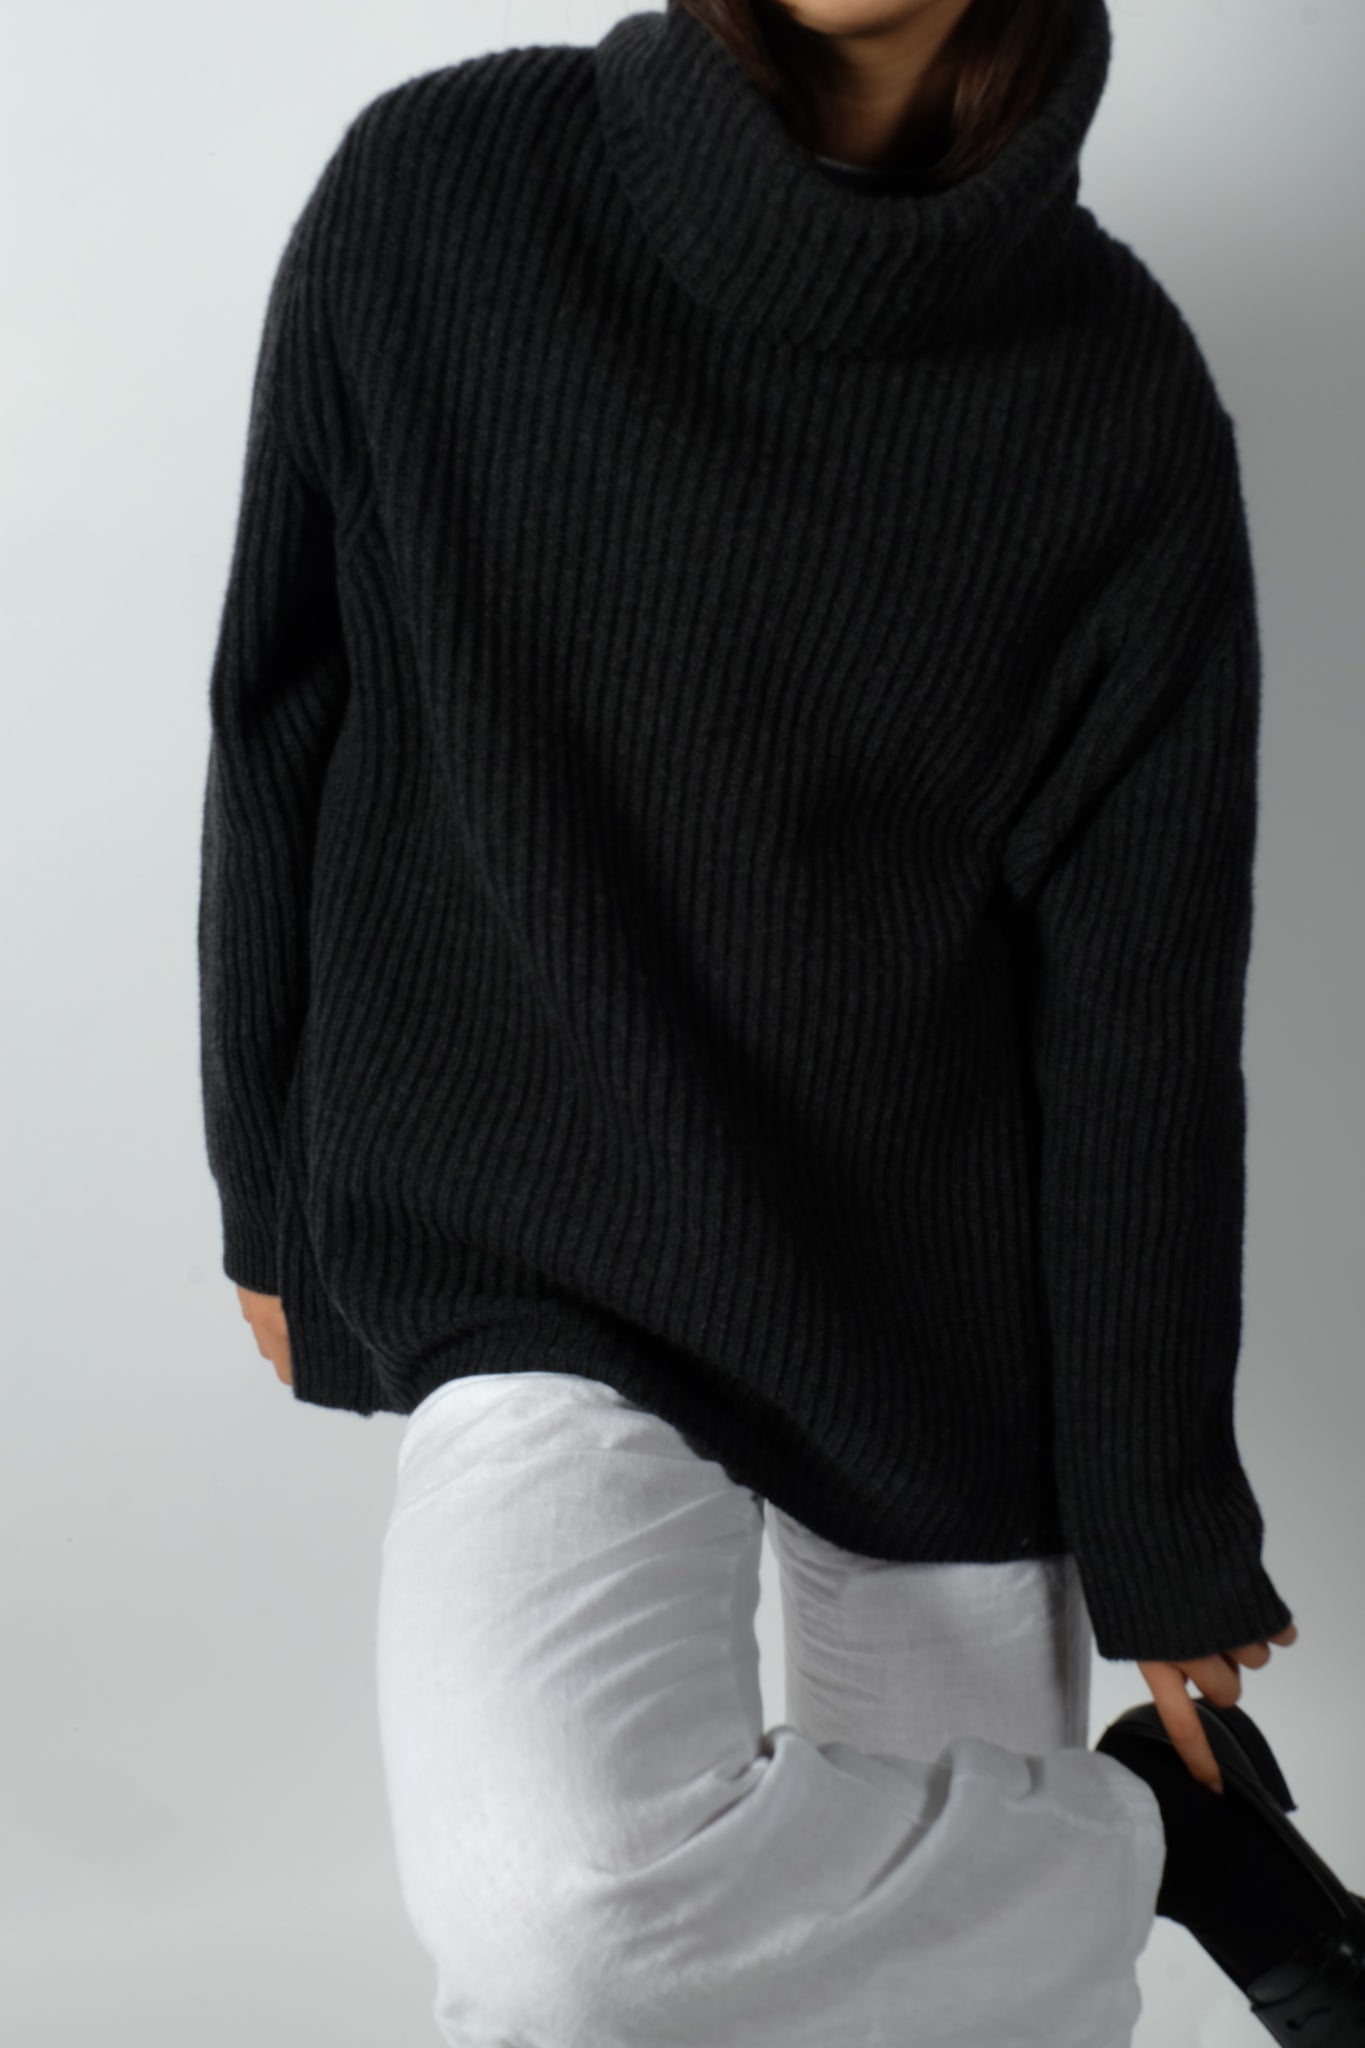 OVERSIZED RIBBED TURTLENECK KNITTED SWEATER IN CHARCOAL